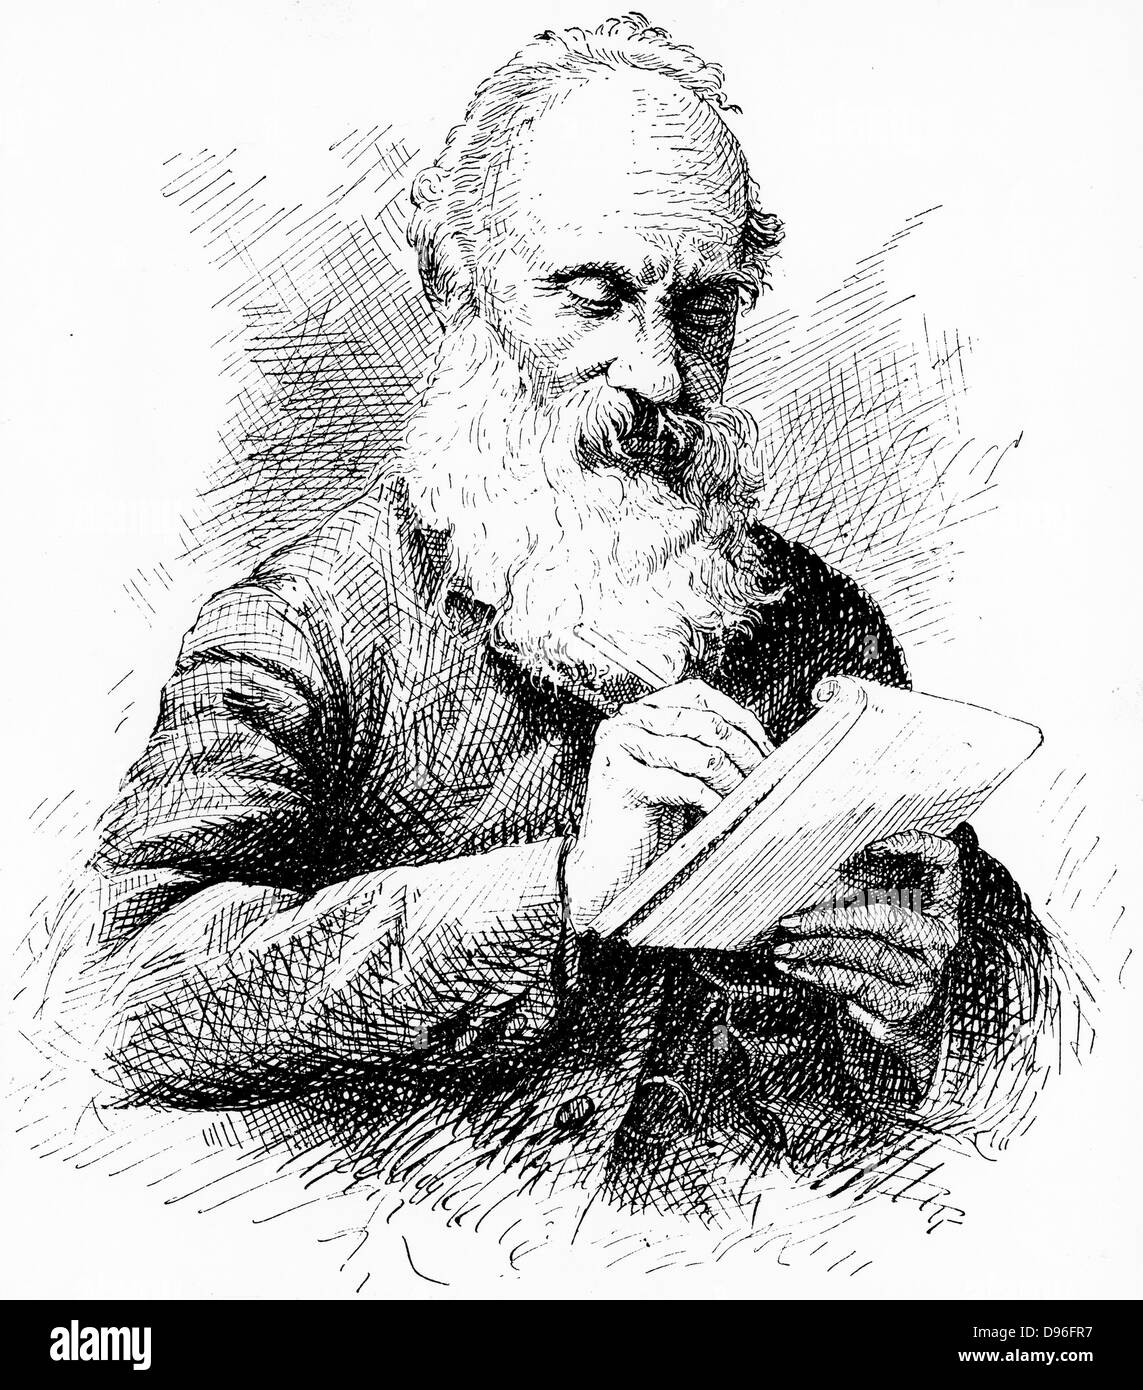 William Thomson, Lord Kelvin (1824-1907), Scottish mathematician and physicist. Engraving published 1906 - Stock Image